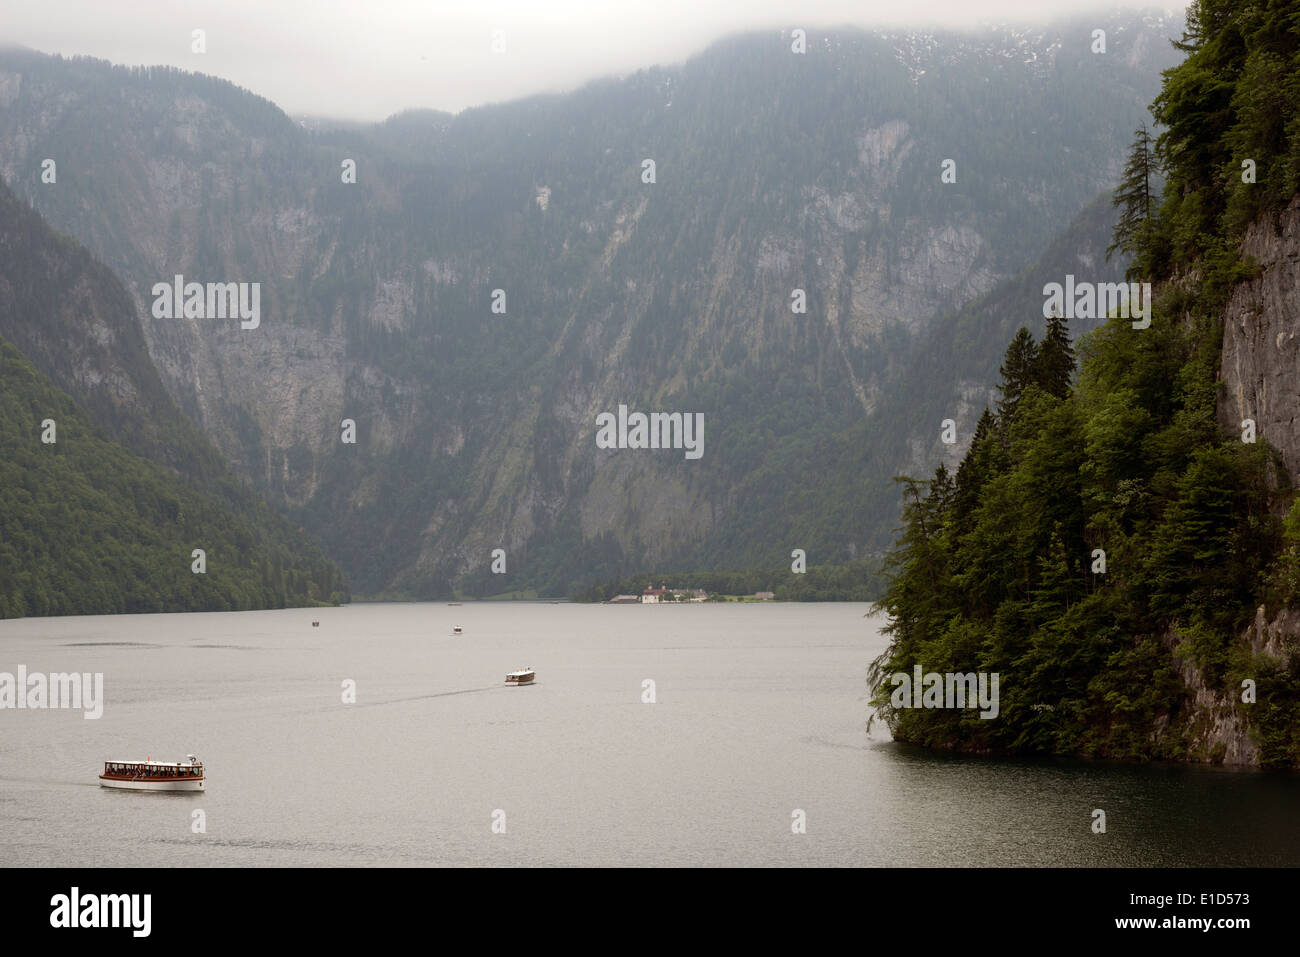 Tourist boats operated by Seen-Schifffahrt on the Konigssee, Bavaria, Germany. - Stock Image